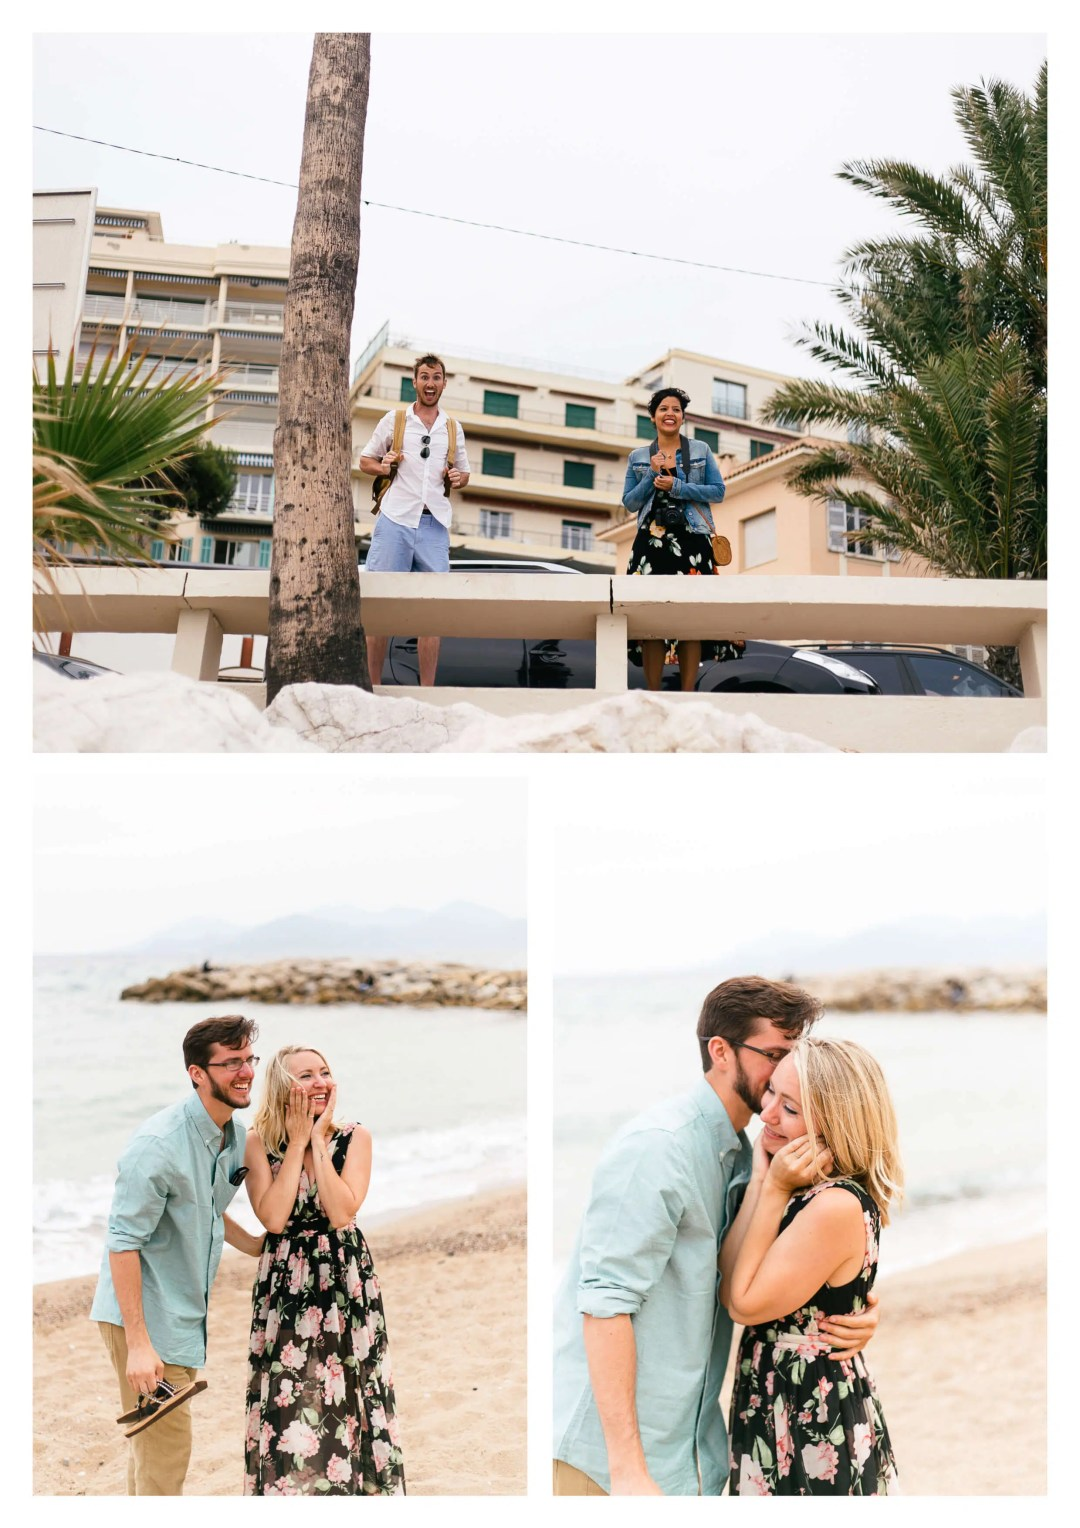 French Riviera Cannes Suprise Proposal Engagement Photographer